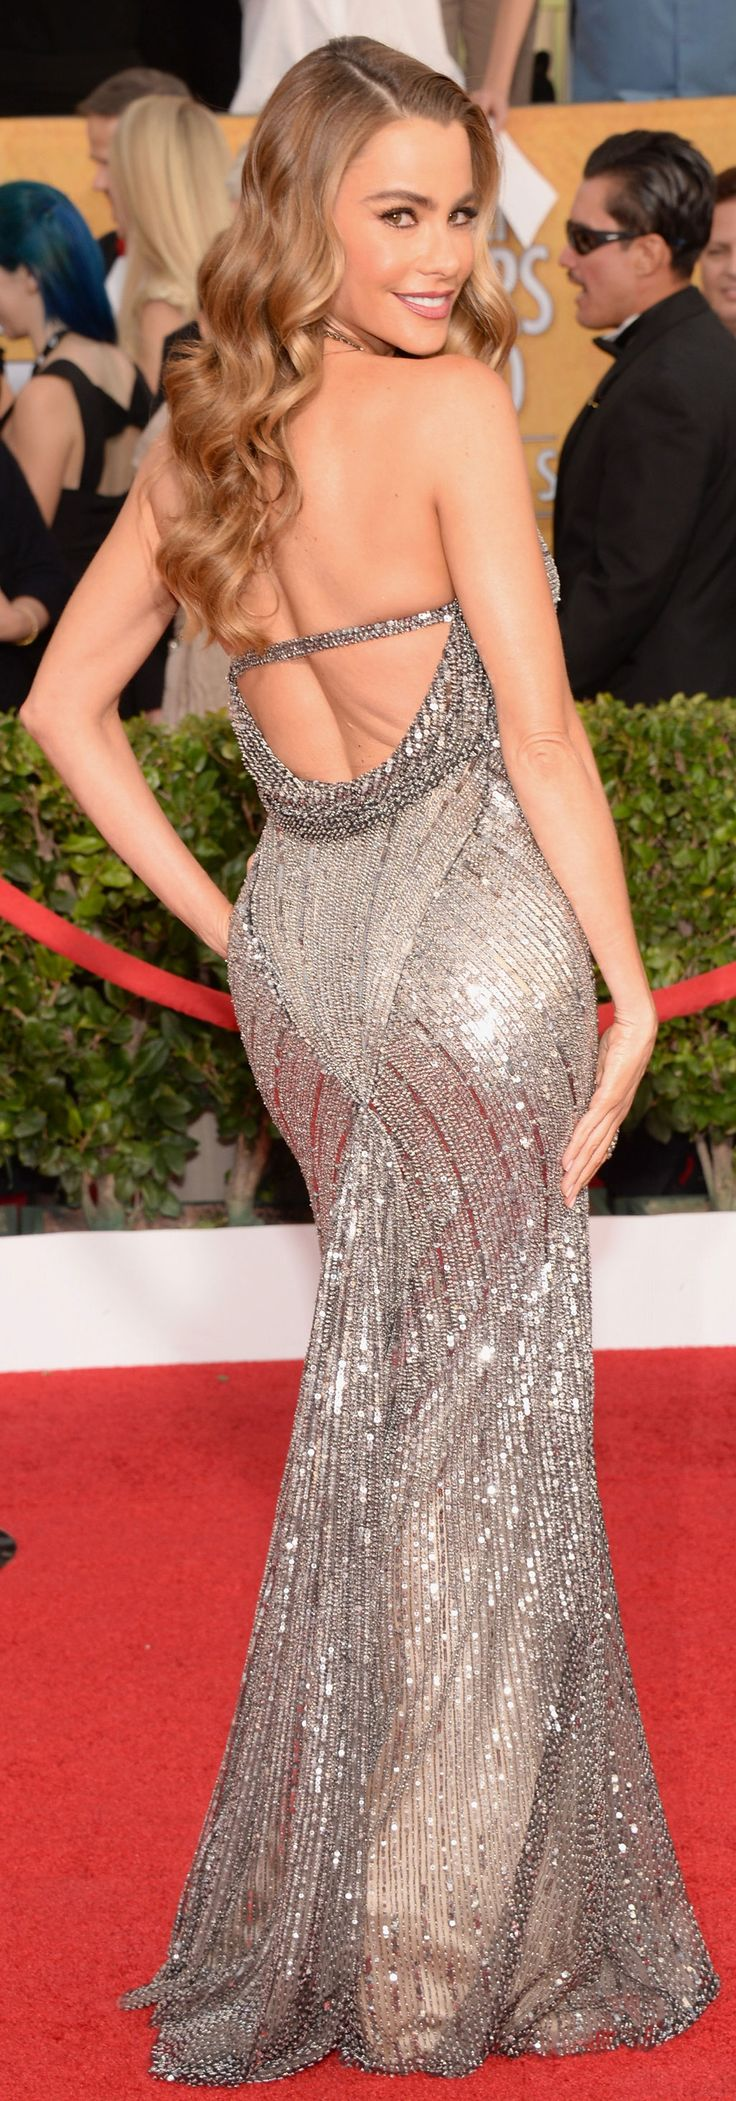 I admire her inner & outer beauty. No one does bombshell better than Sofia Vergara. #SAGAwards